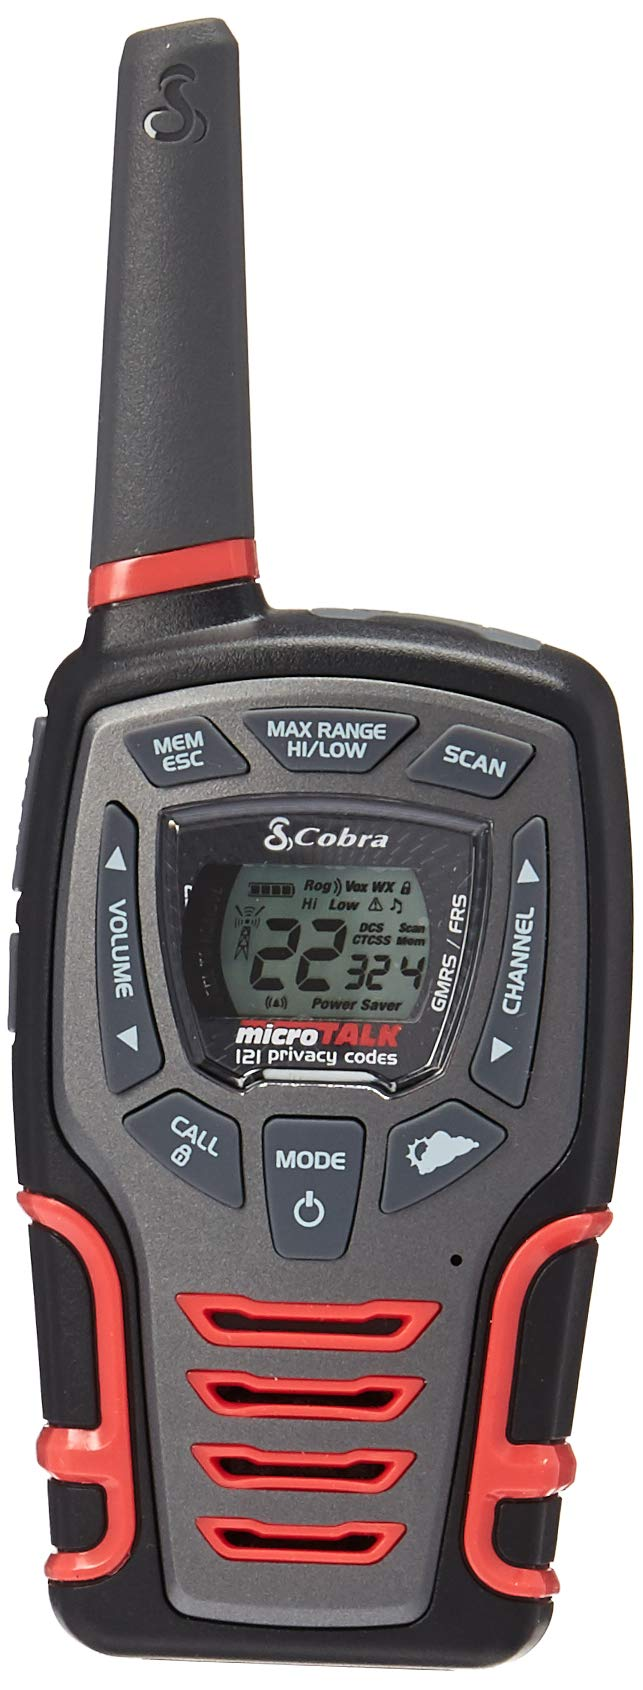 Cobra CXT531 Kids' Walkie Talkies Two-Way Radios Toy for Kids, Rechargeable with Dock, Black & Red (Pair)